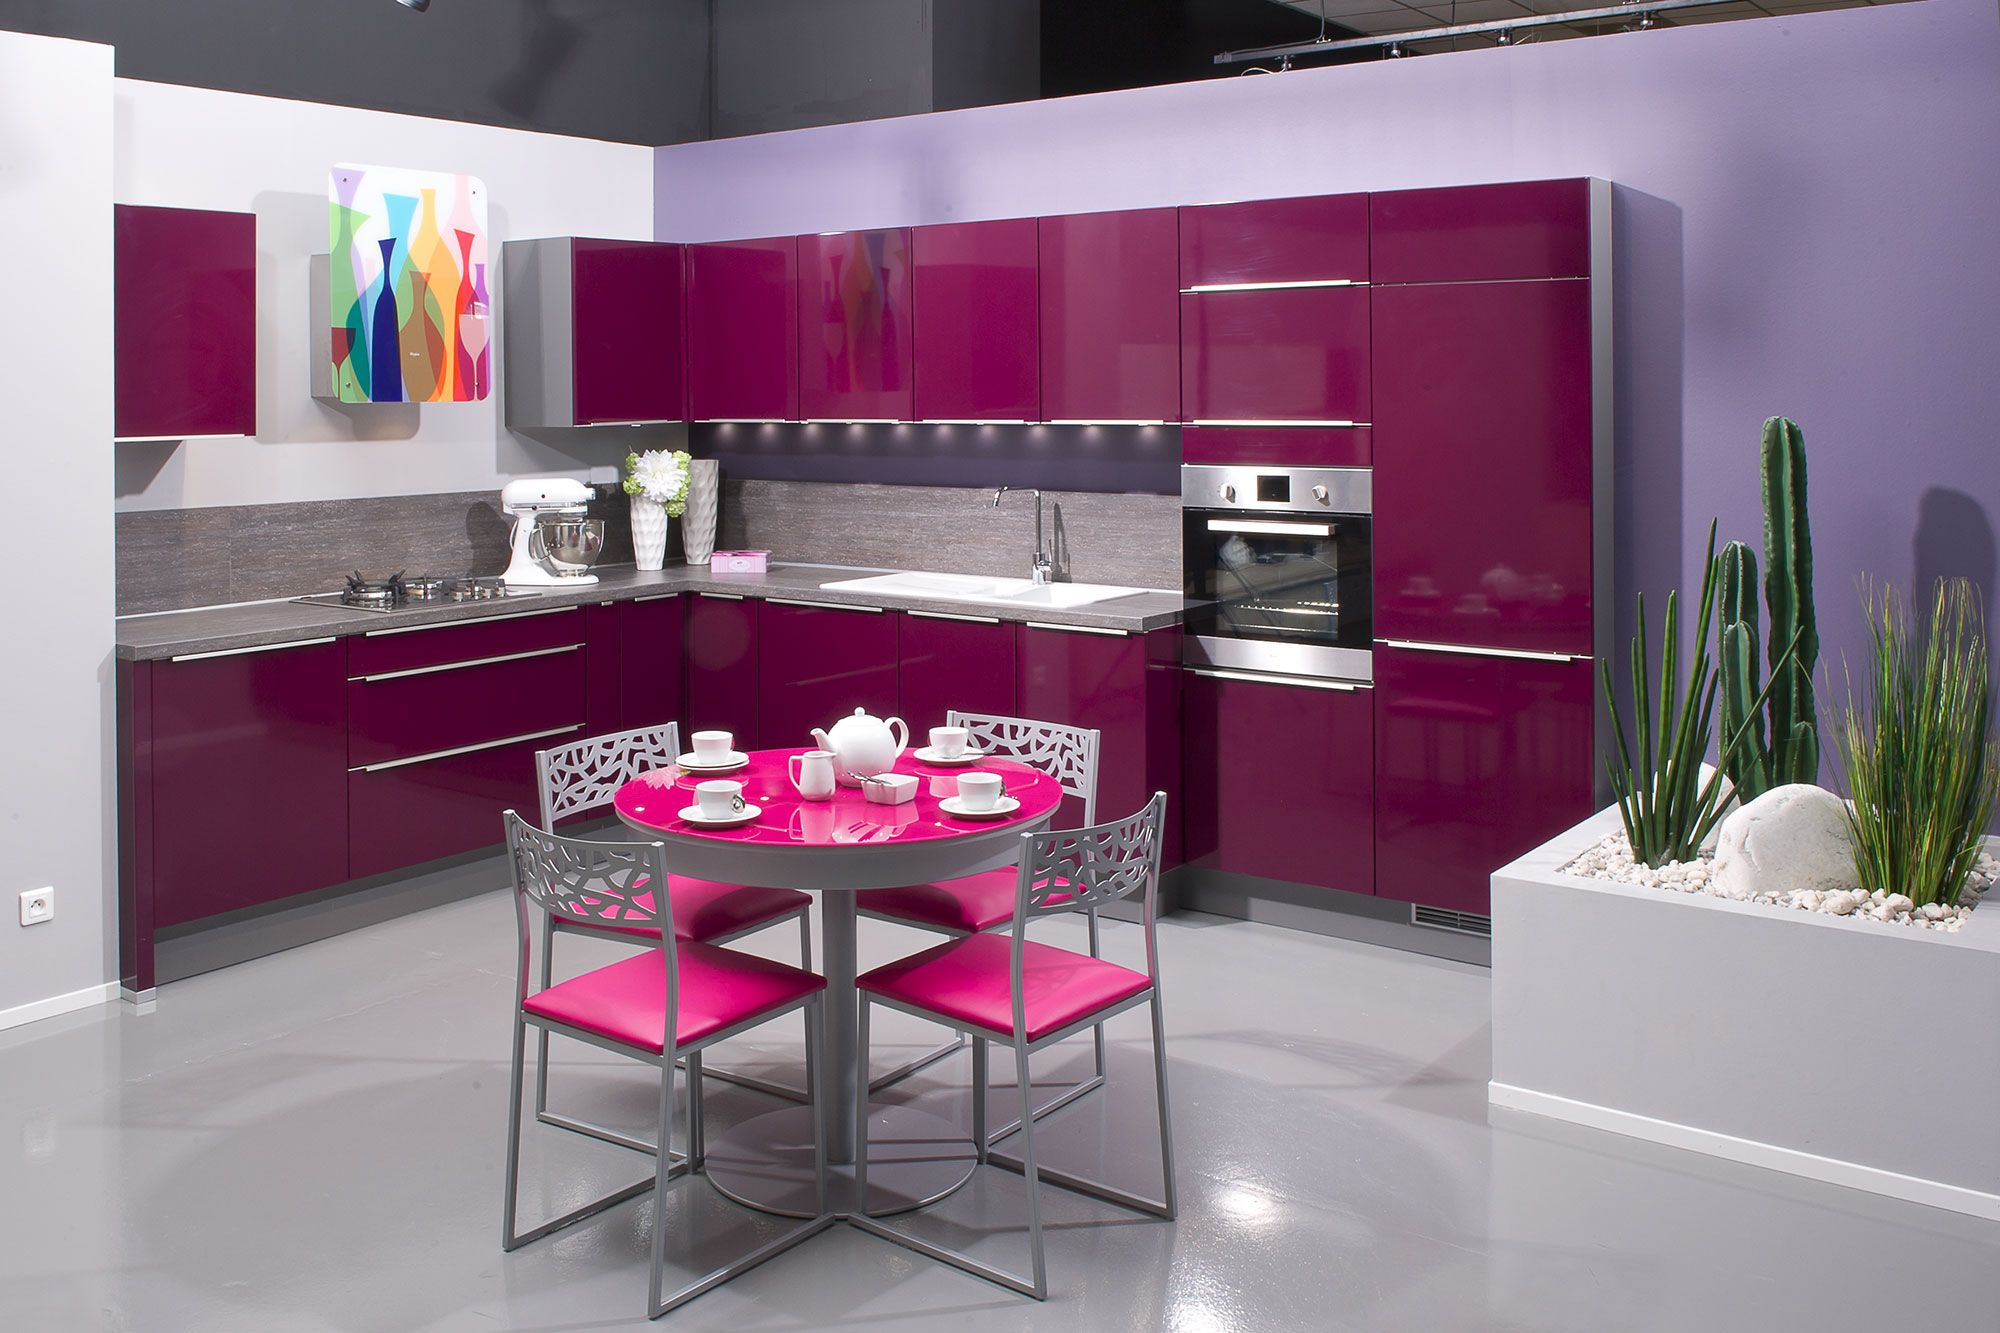 subtile m lange de prune et de fuchsia pour une cuisine girly konyha pinterest. Black Bedroom Furniture Sets. Home Design Ideas